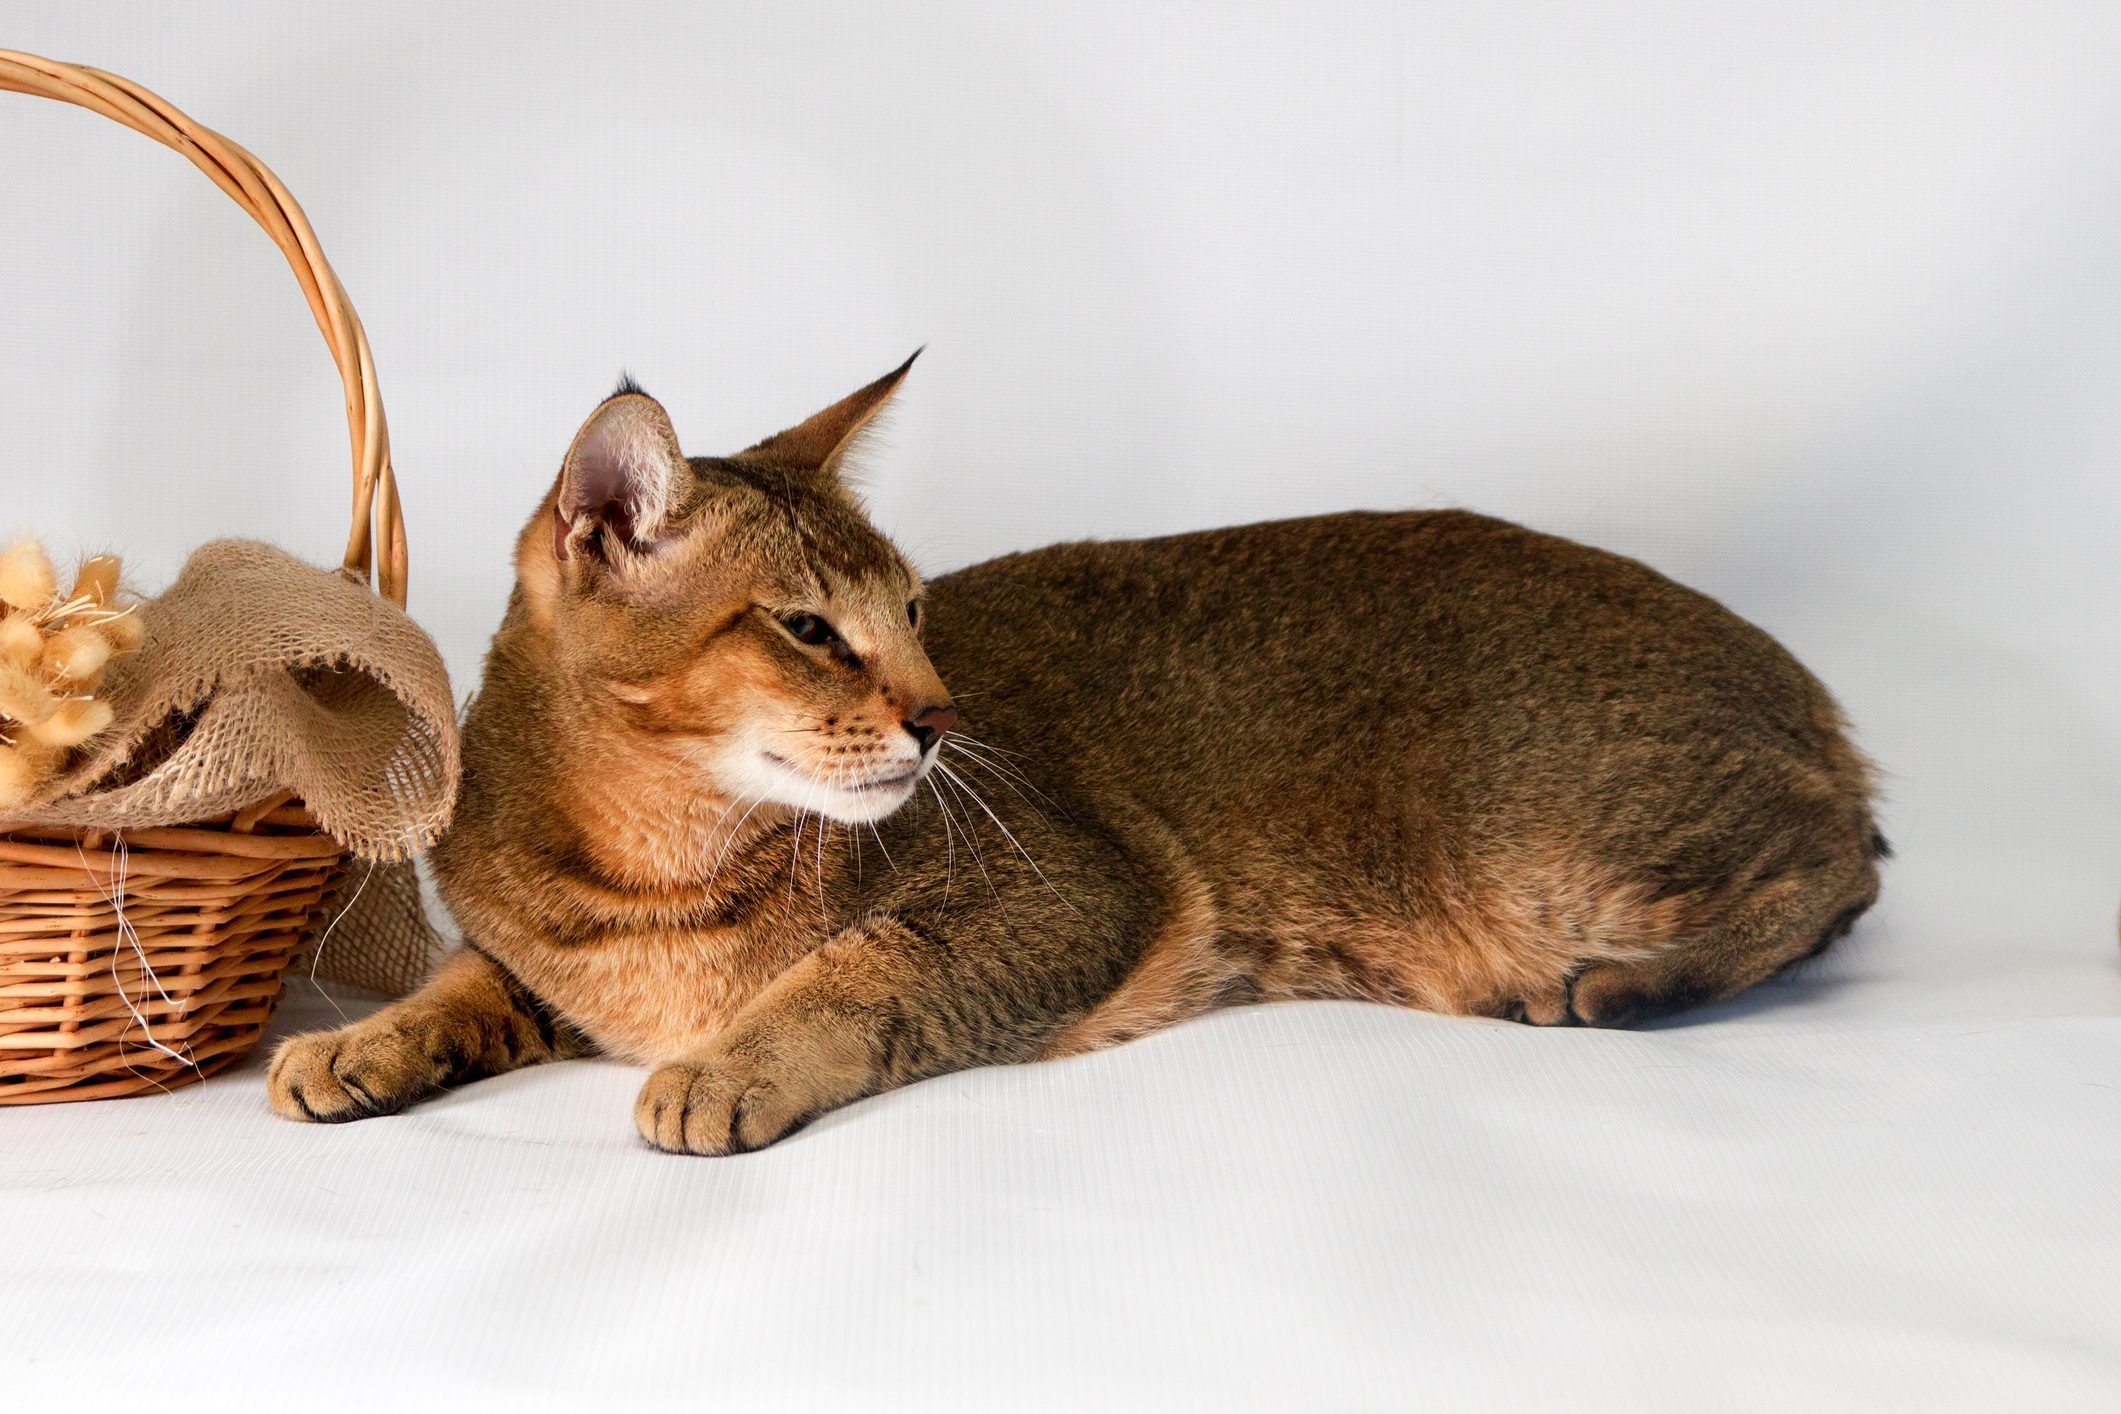 Chausie, abyssinian cat on white background